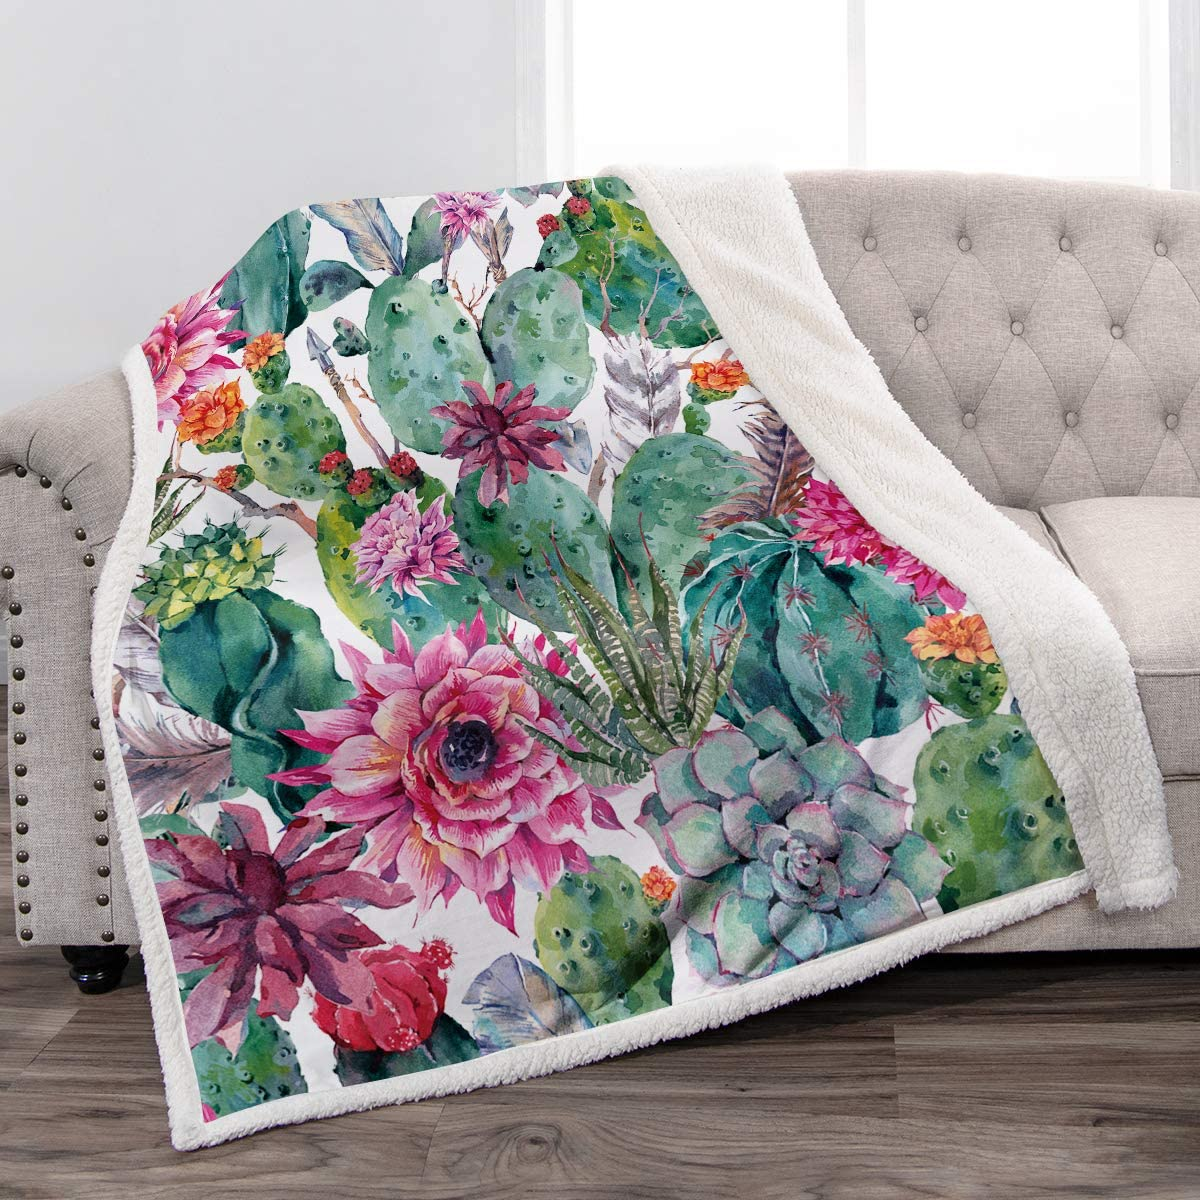 """Jekeno Cactus Flower Sherpa Blanket Smooth Soft Print Throw Blanket for Sofa Chair Bed Office 50""""x60"""""""